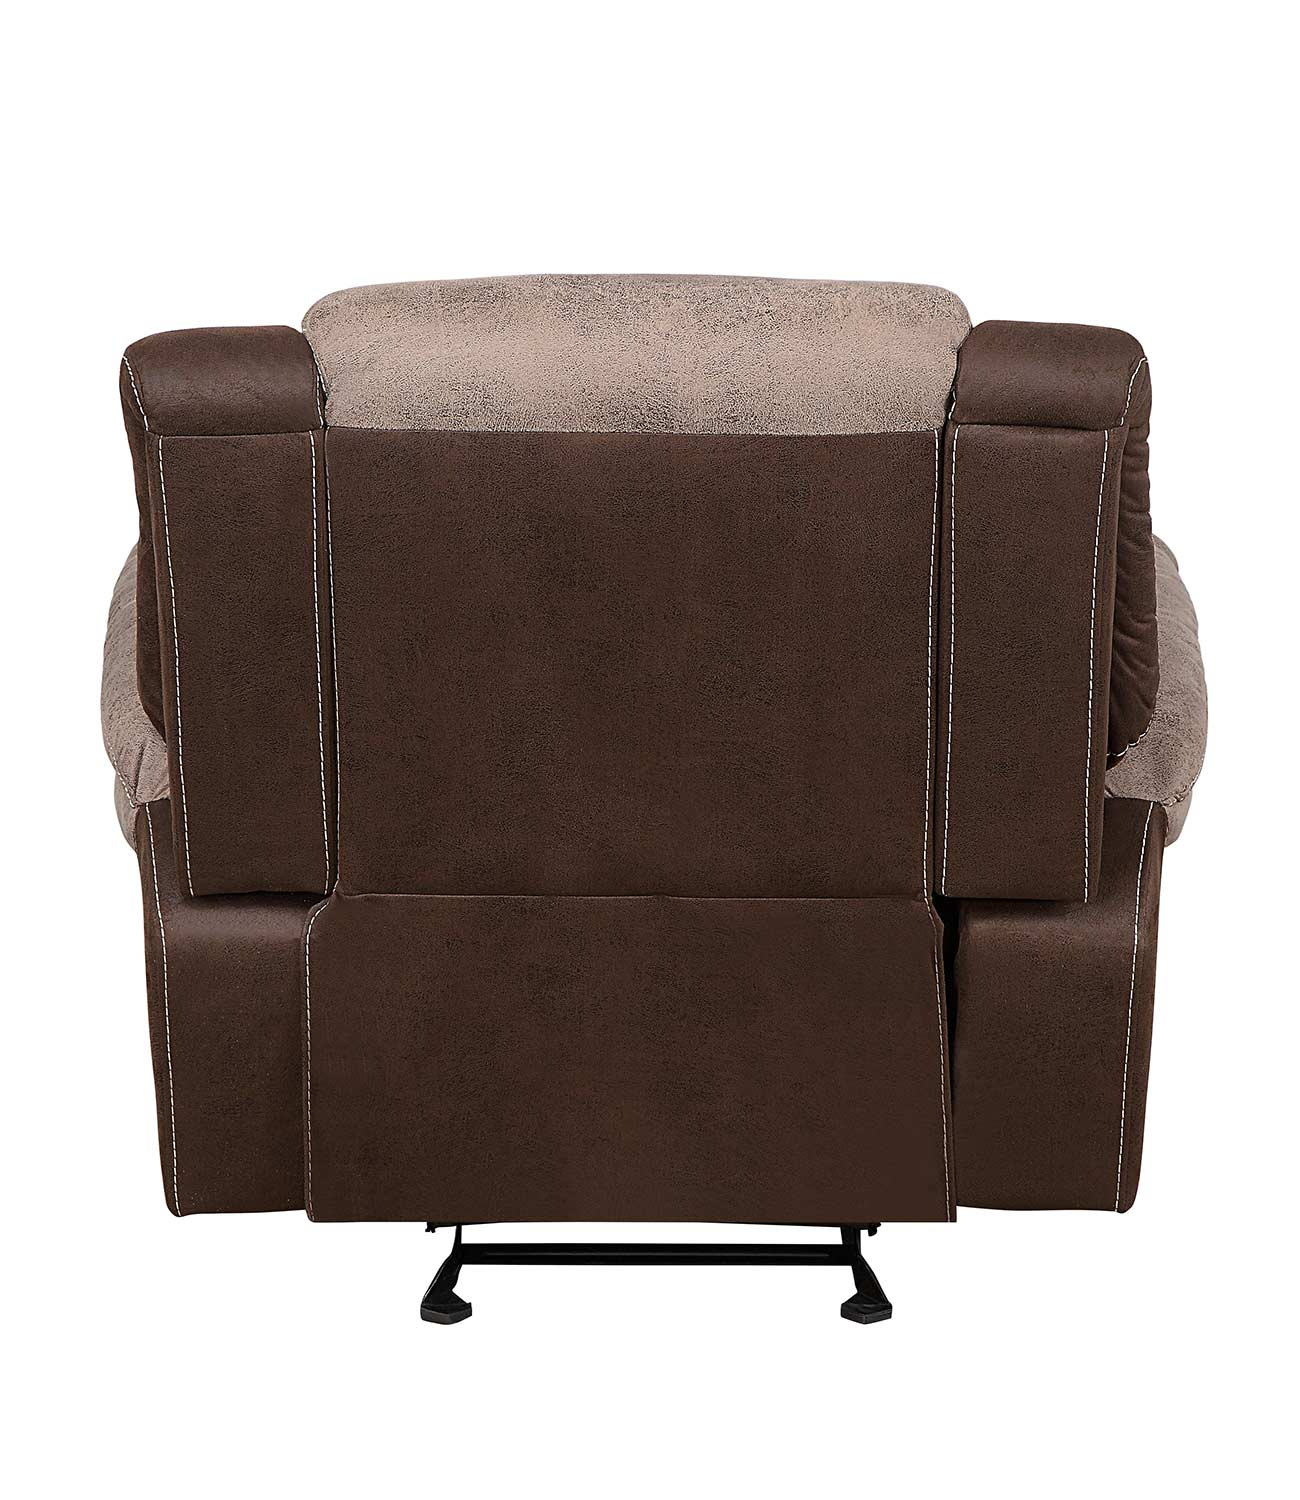 Homelegance Chai Glider Reclining Chair - Brown and dark brown polished microfiber